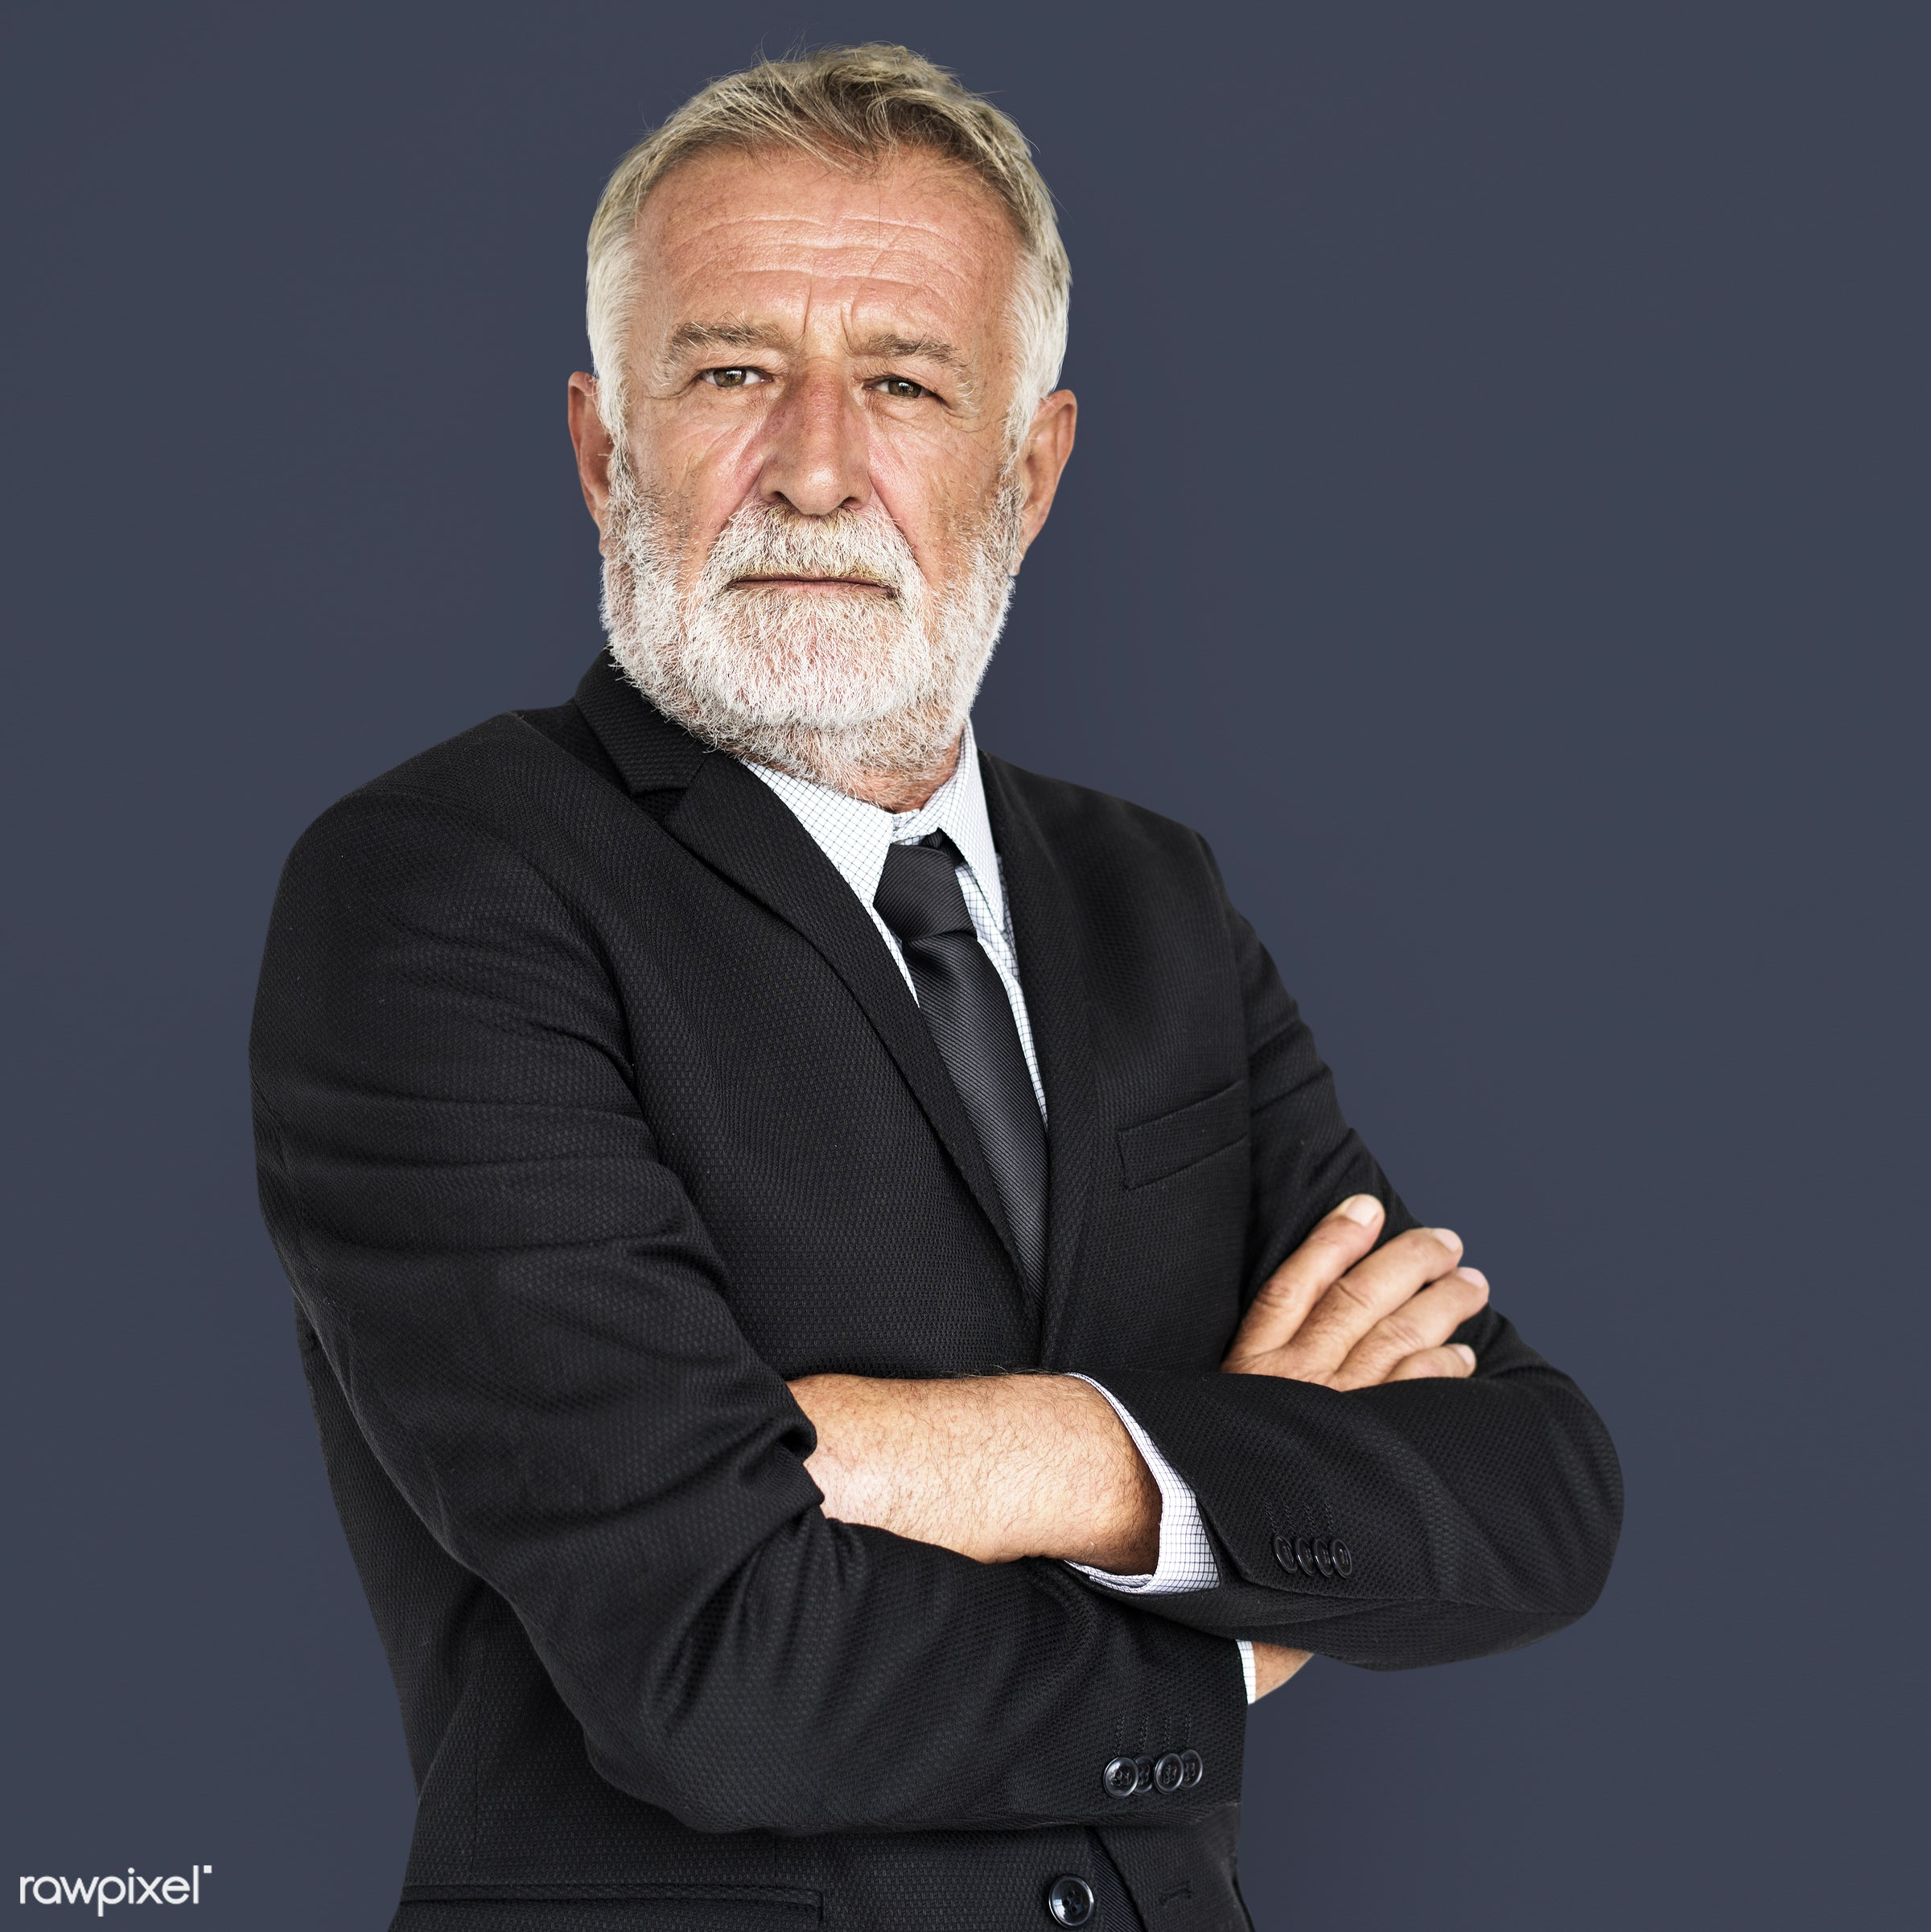 studio, intelligent, expression, person, wisdom, people, caucasian, serious, intelligence, isolated, portrait, grey hair,...